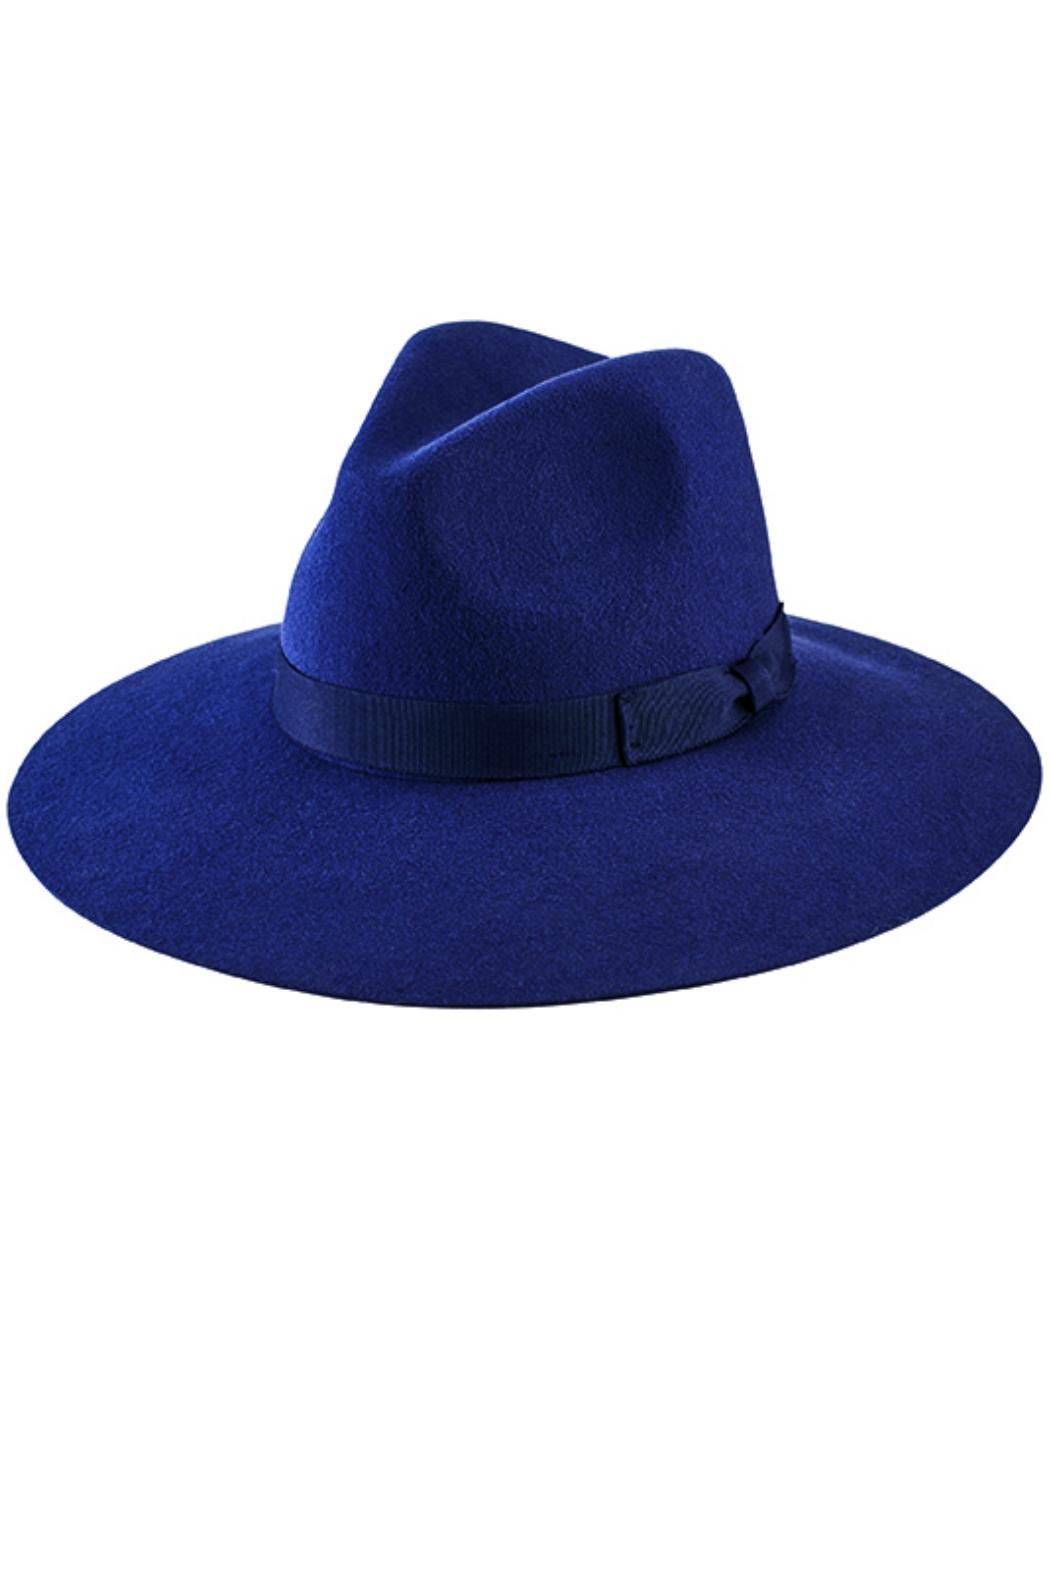 San Diego Hat Company Blue Floppy Hat - Main Image